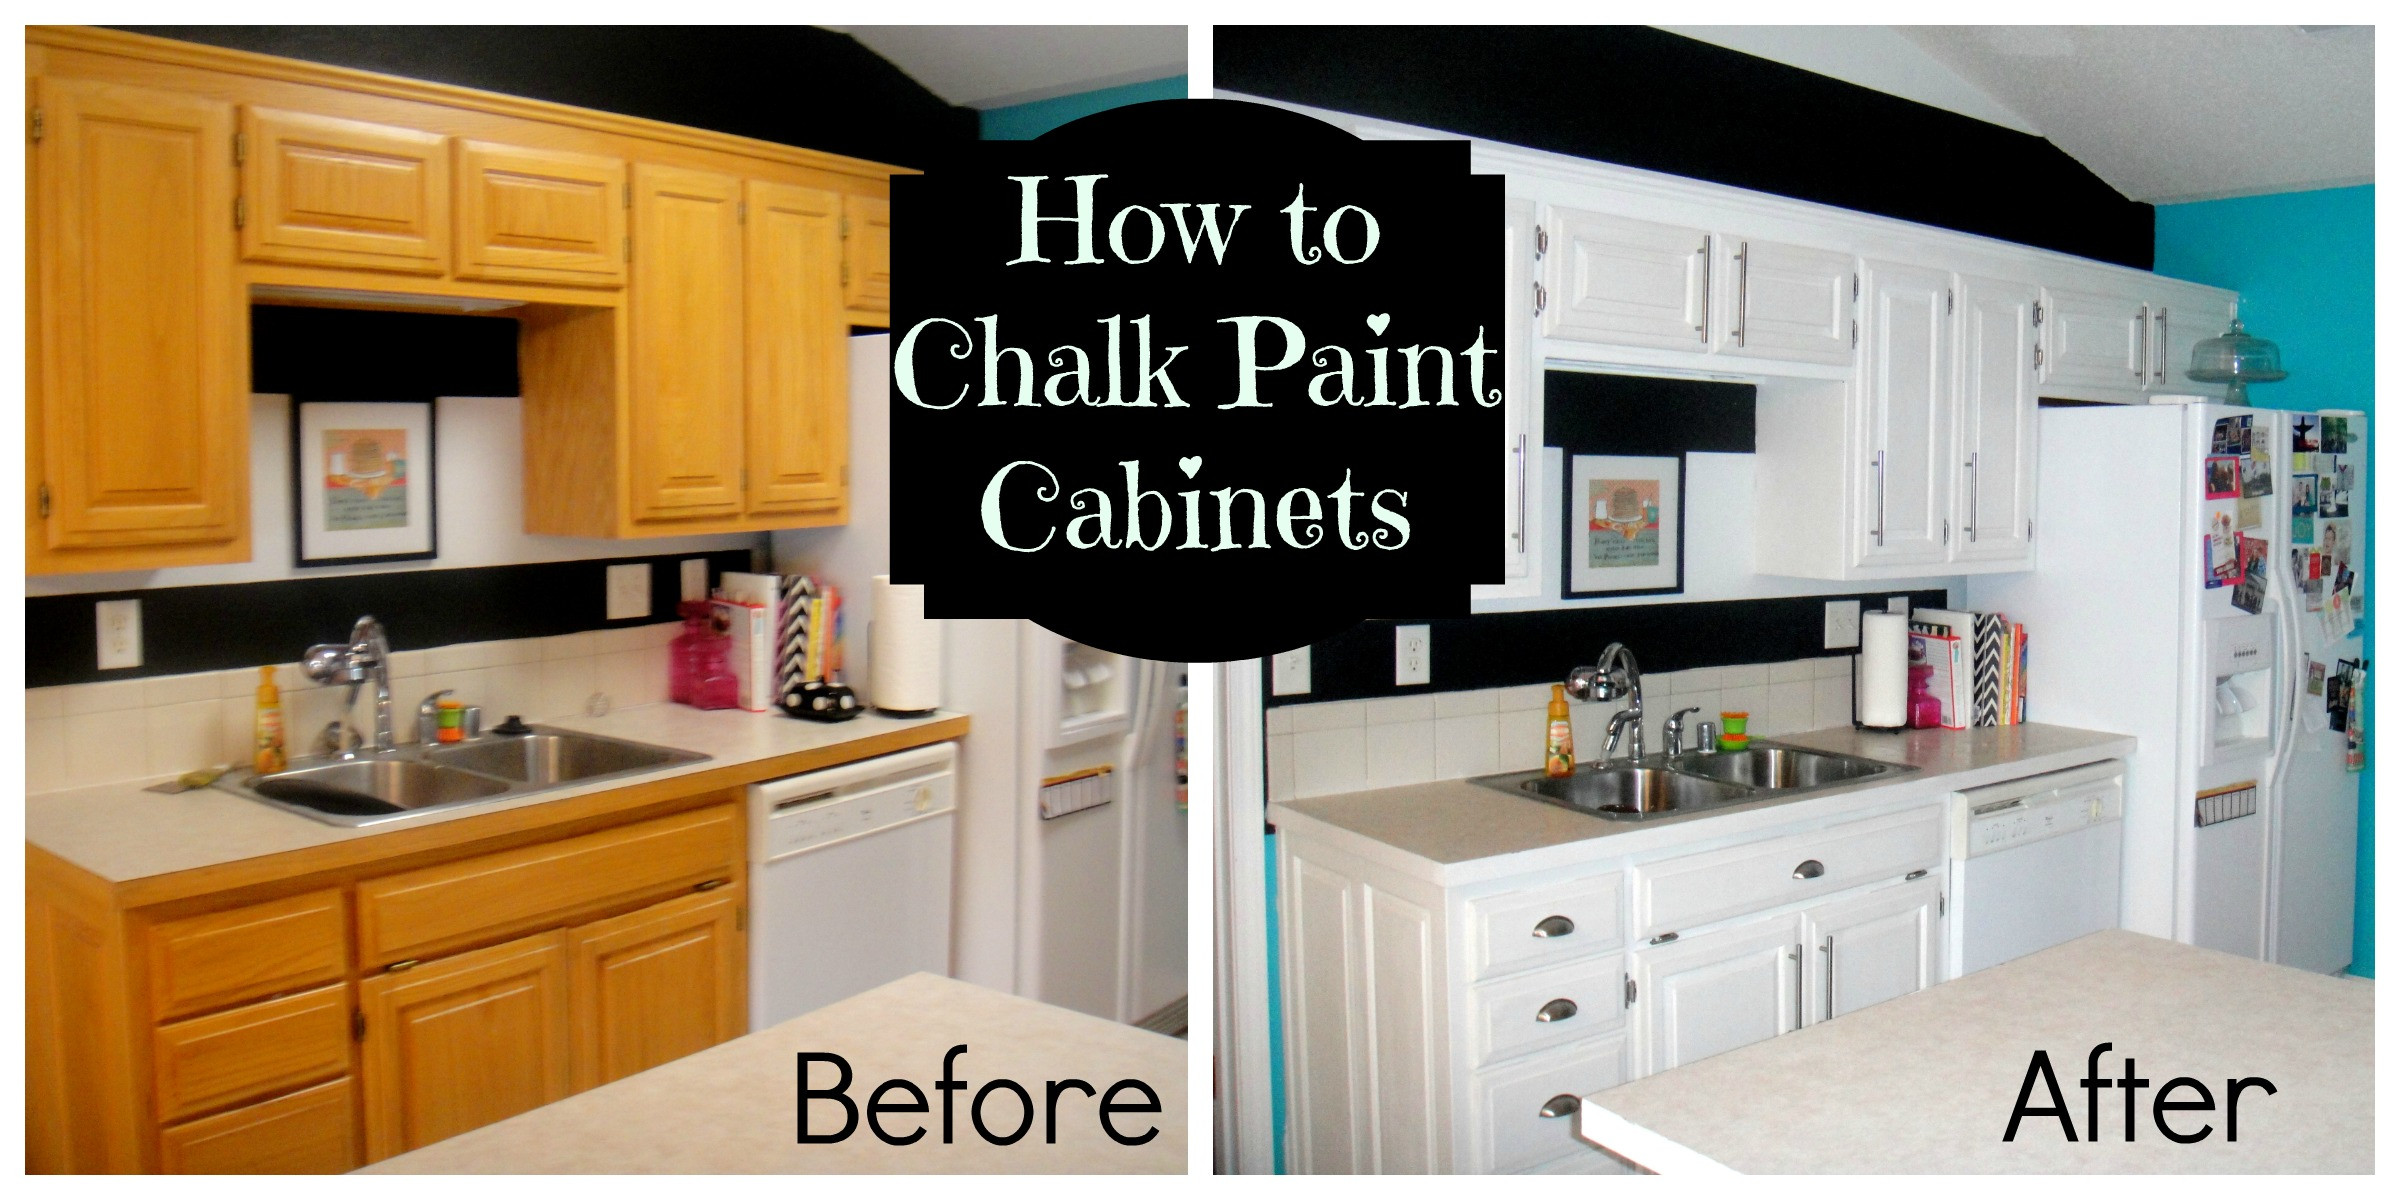 Chalk Paint Kitchen Cabinets Before And After  How to chalk paint